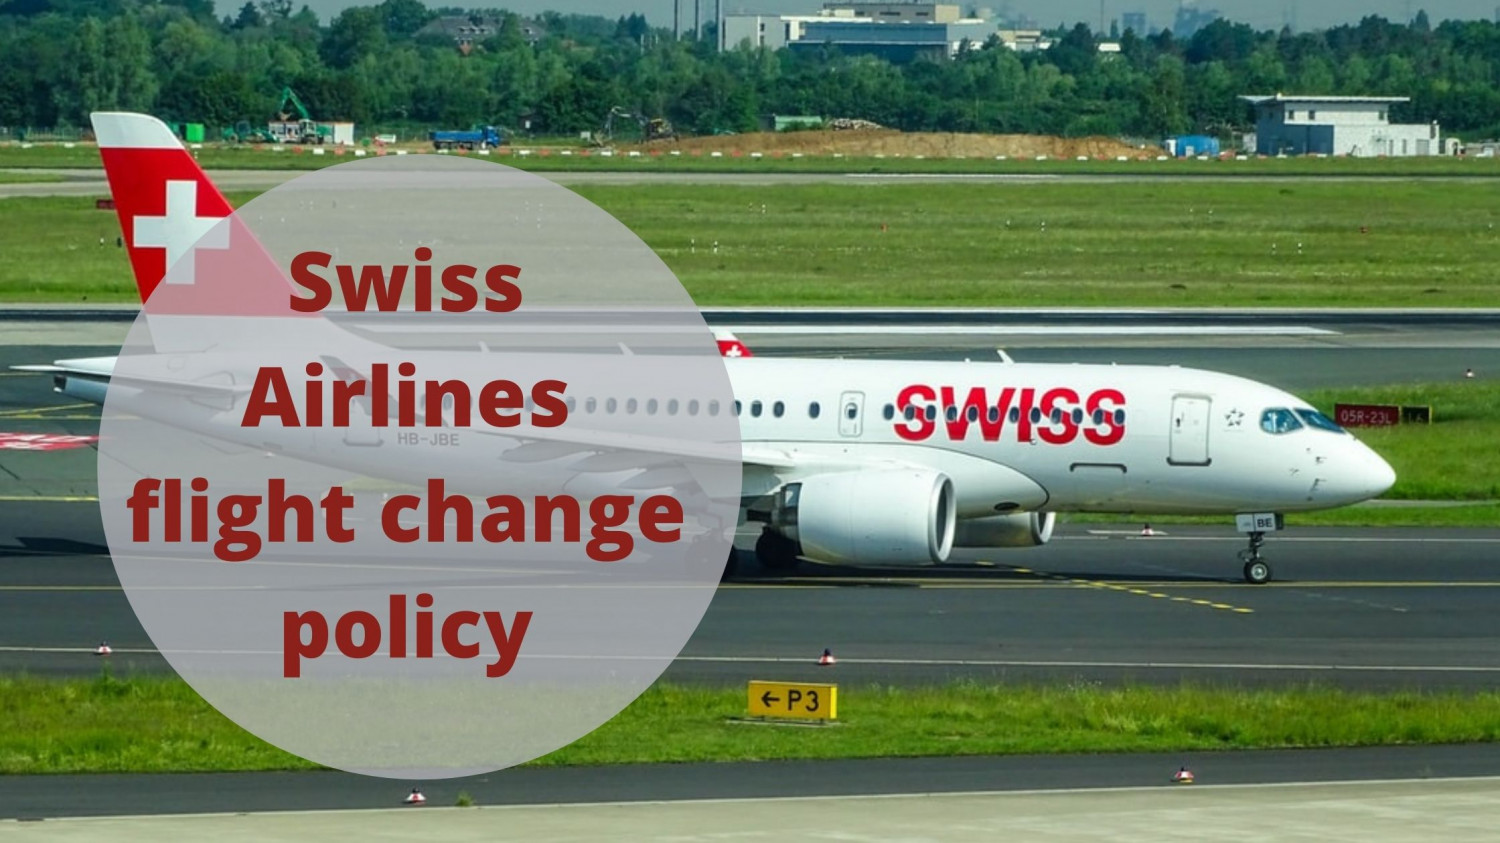 Know! Swiss Airlines flight change policy Infographic